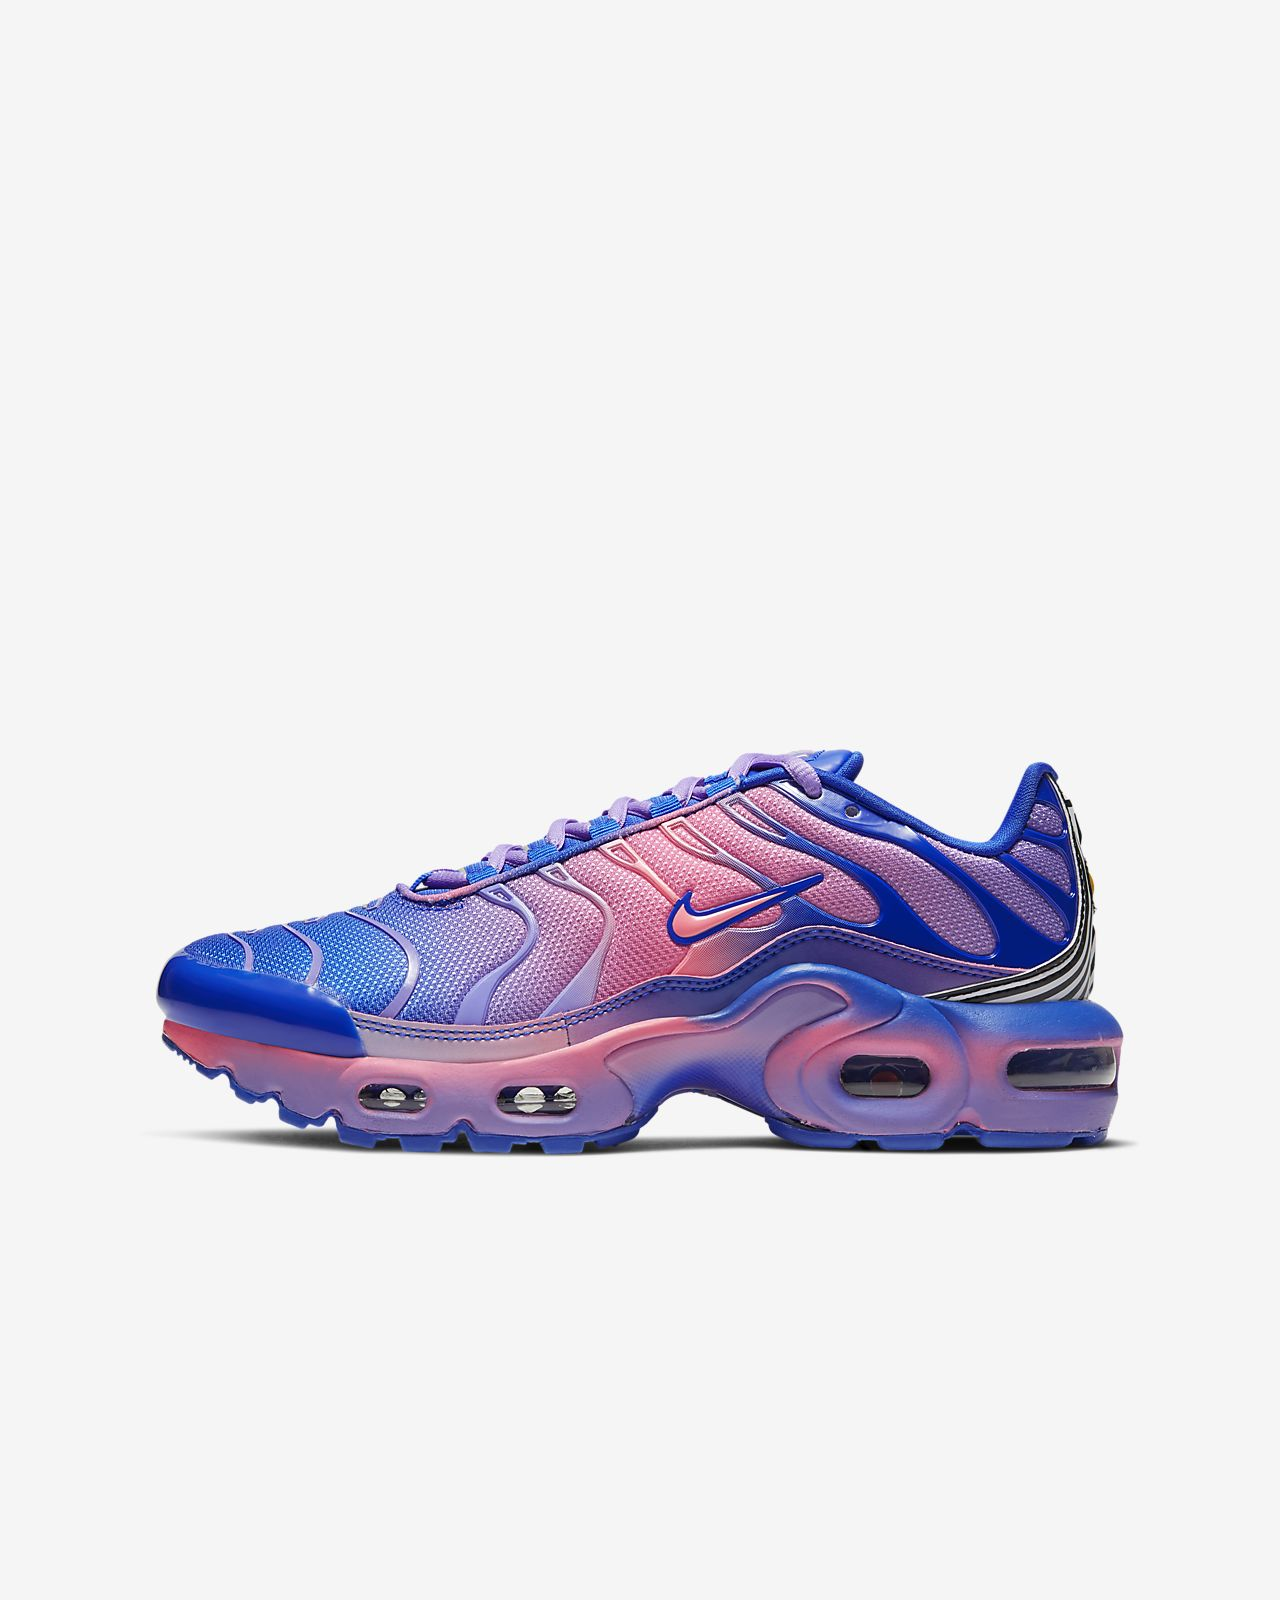 Nike Air Max Plus QS Older Kids' Shoe